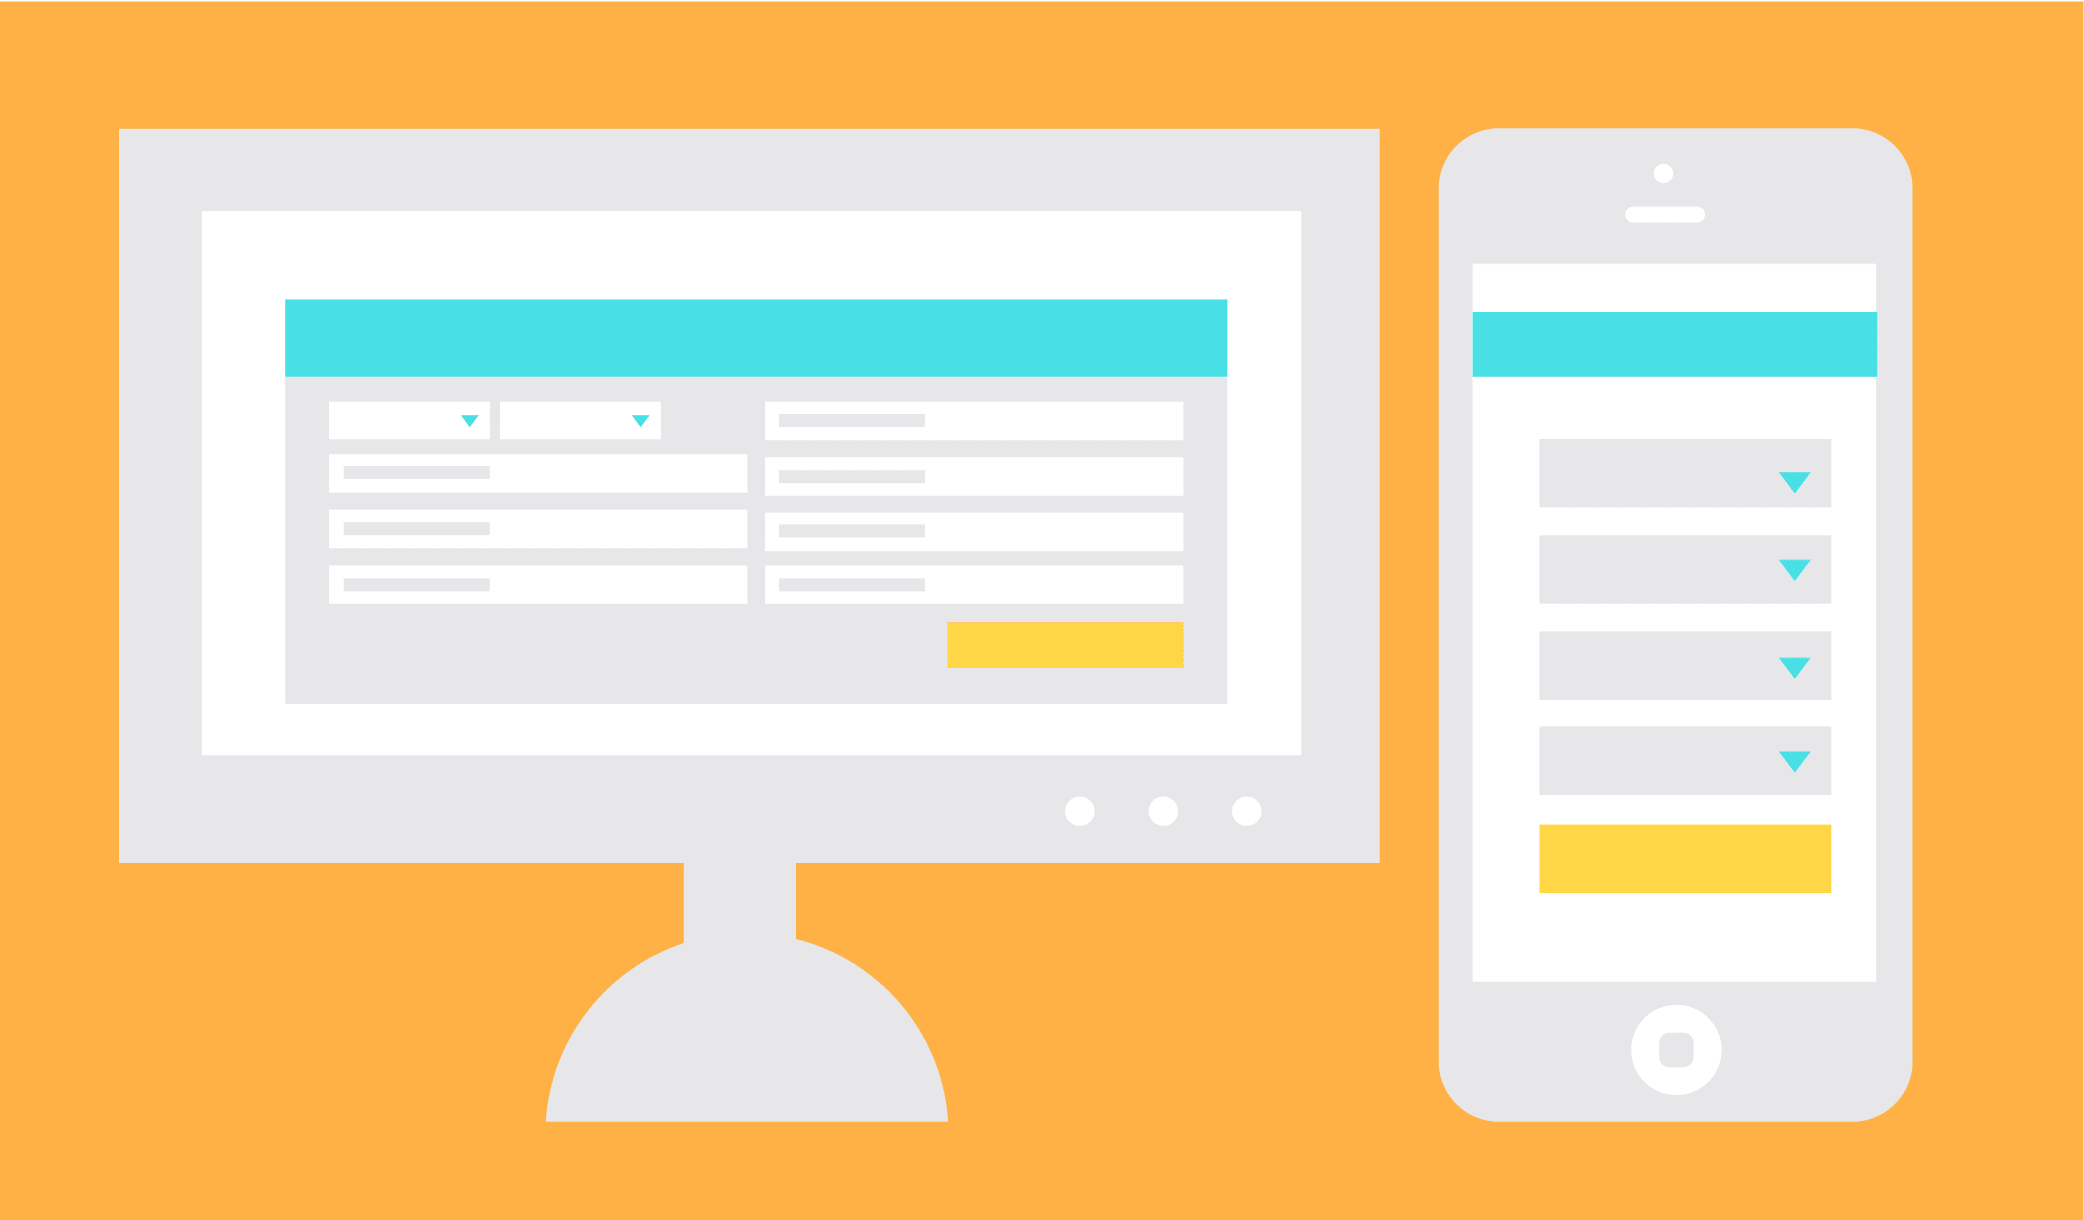 Illustration showing the differences between mobile and desktop forms.